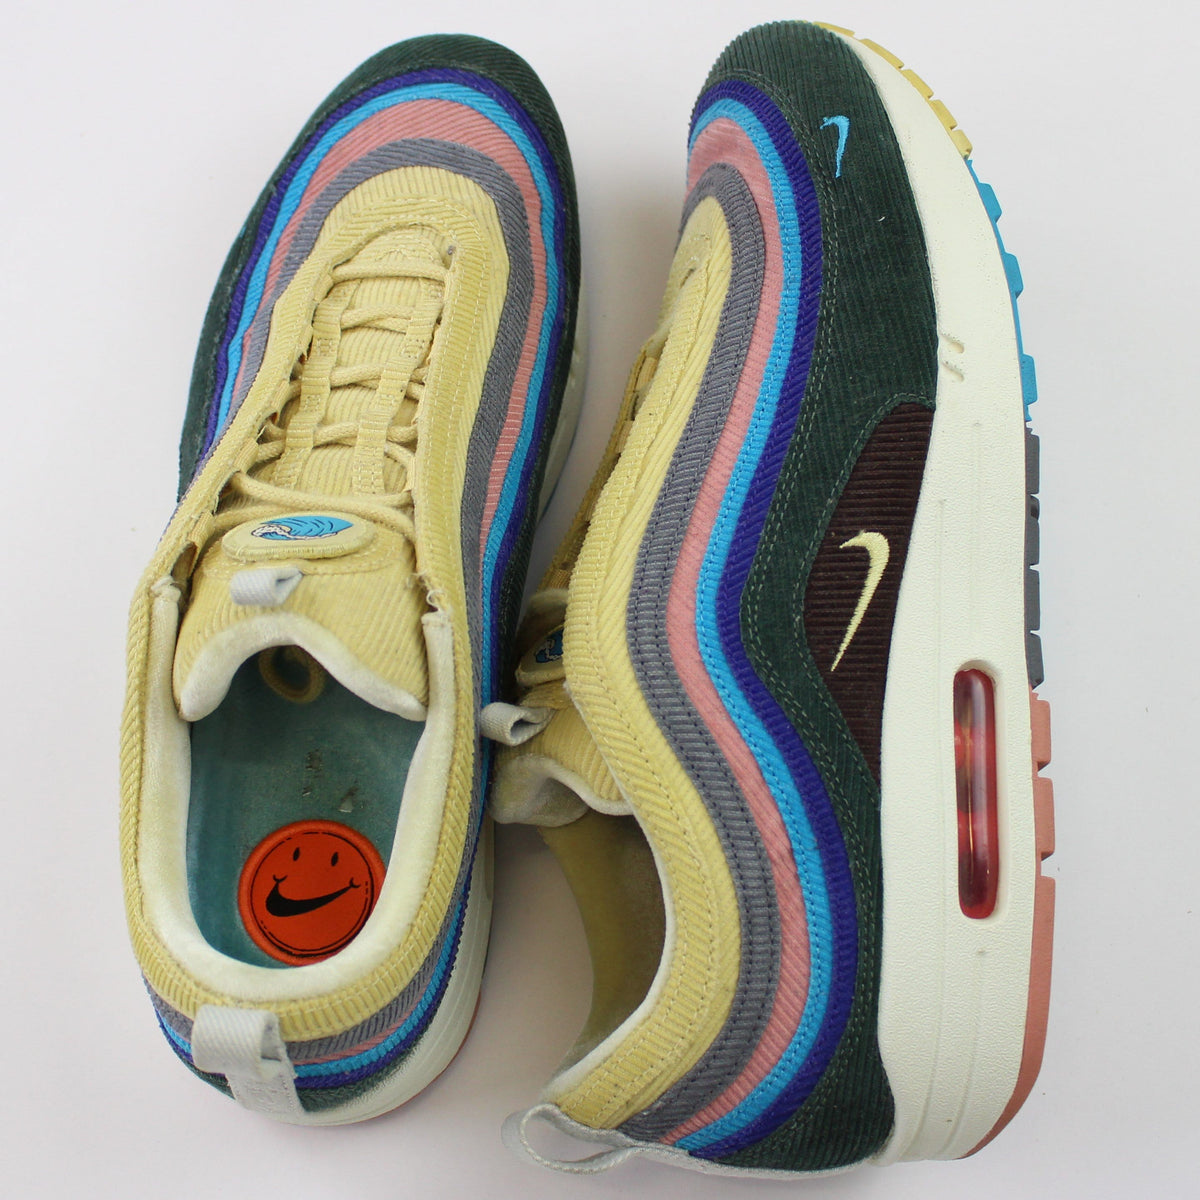 Nike x Sean Wotherspoon Airmax 971s - SaruGeneral